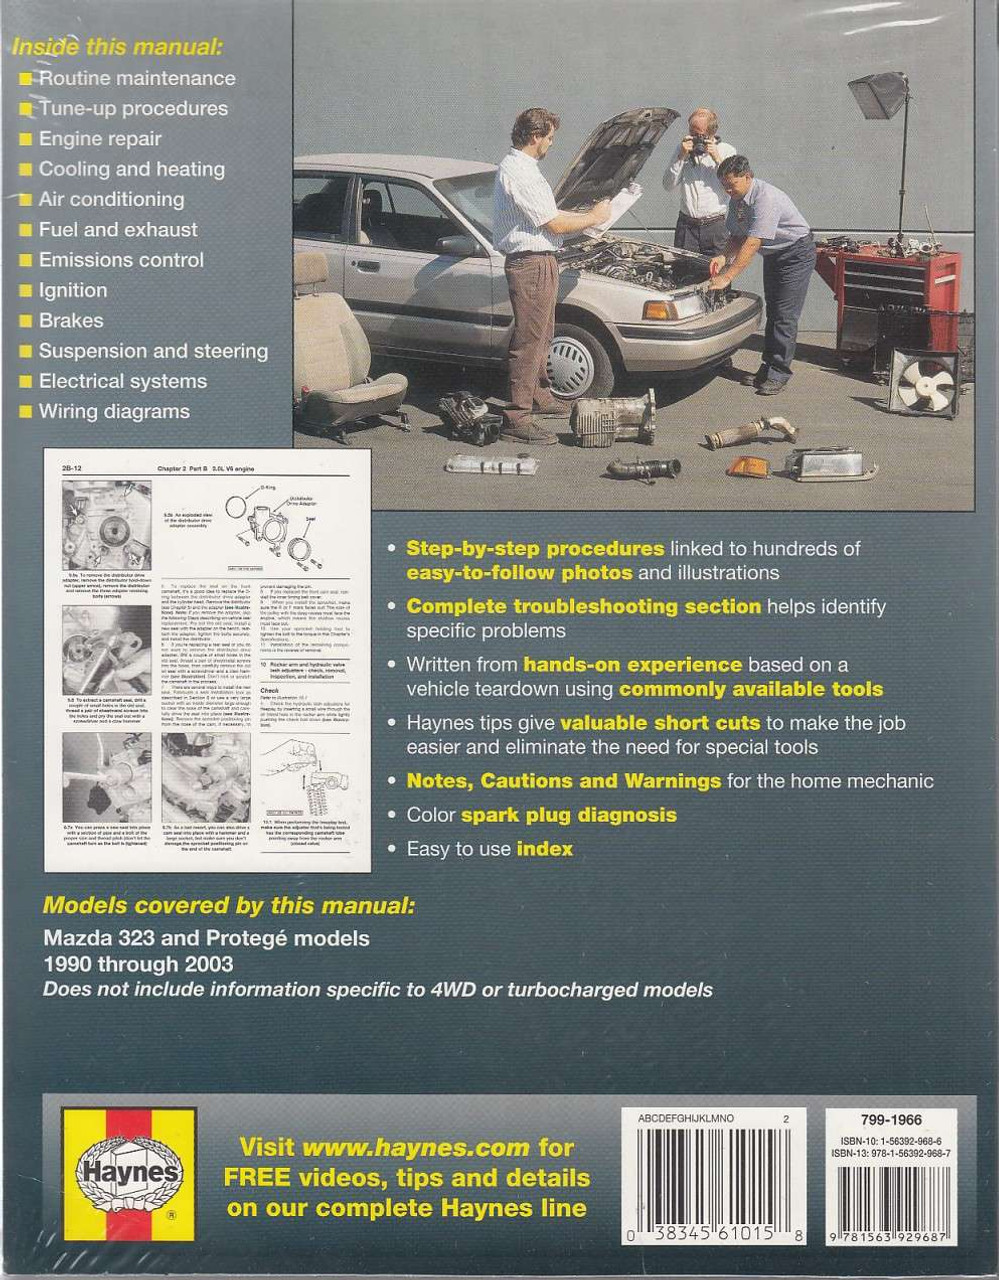 Mazda 323 And Protege 1990 2003 Workshop Manual 1993 Rx 7 Wiring Schematic Back